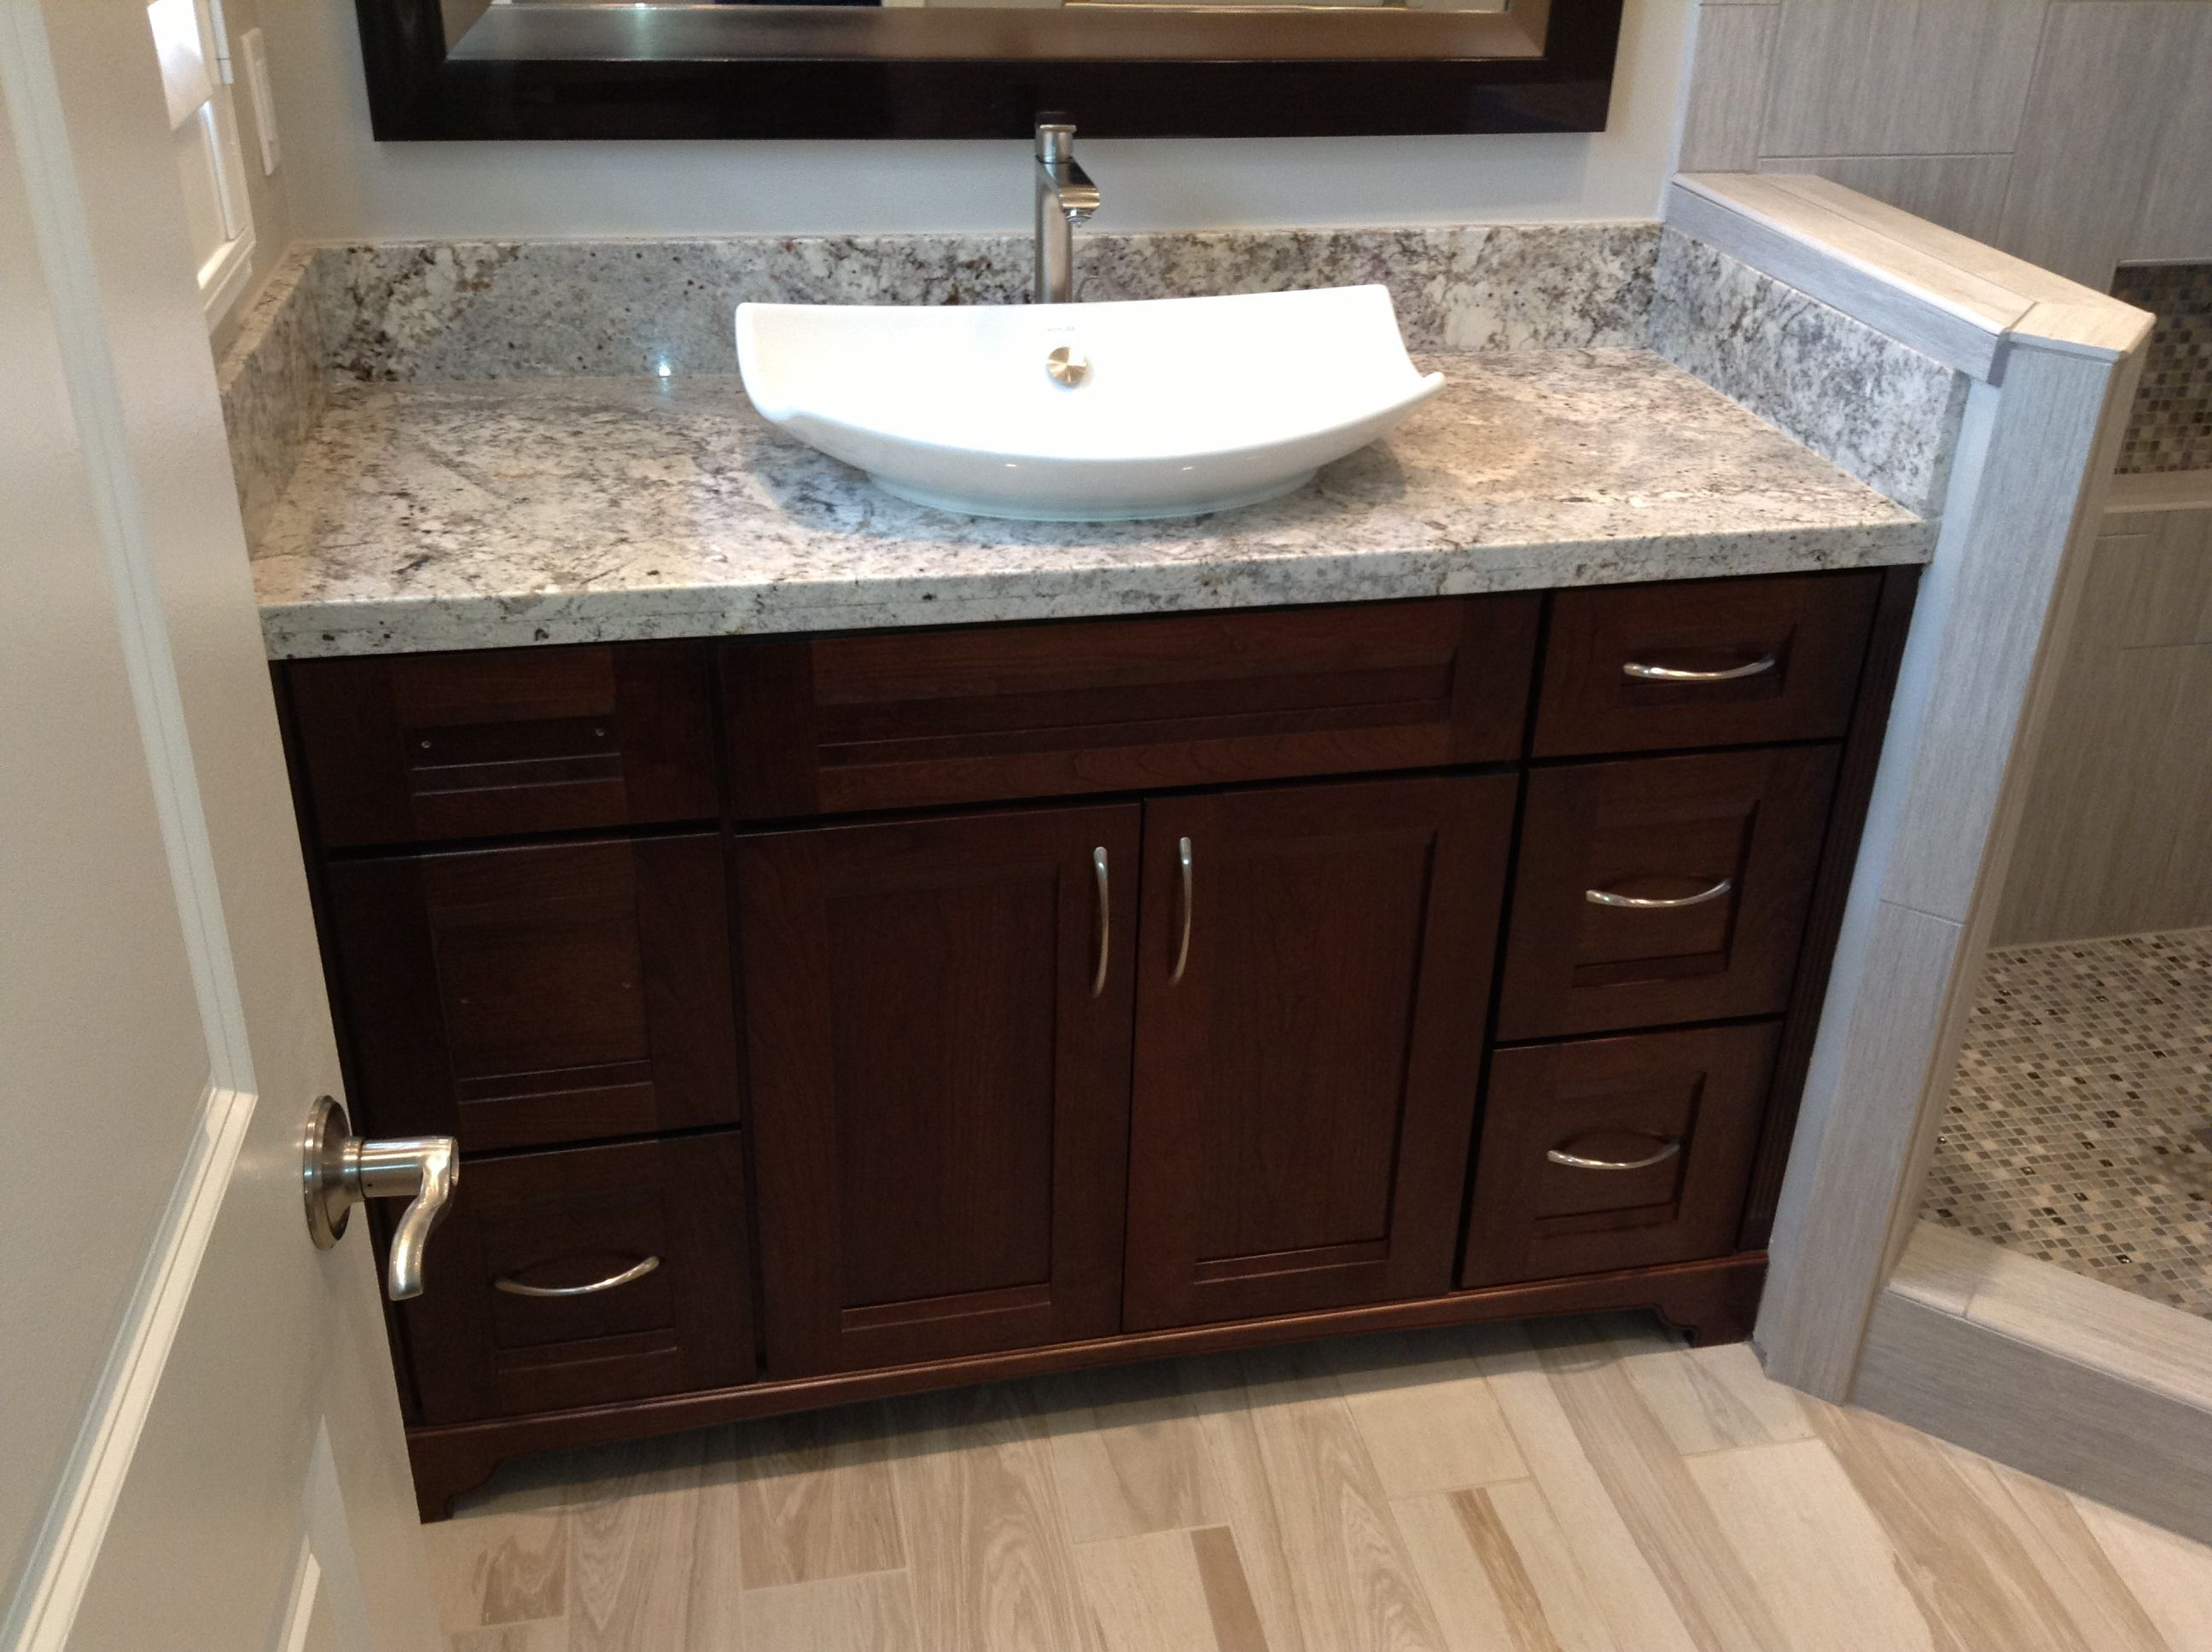 Beautiful Dark Wood Vanity With Granite Countertop And White Vessel Sink Work Done By Advance